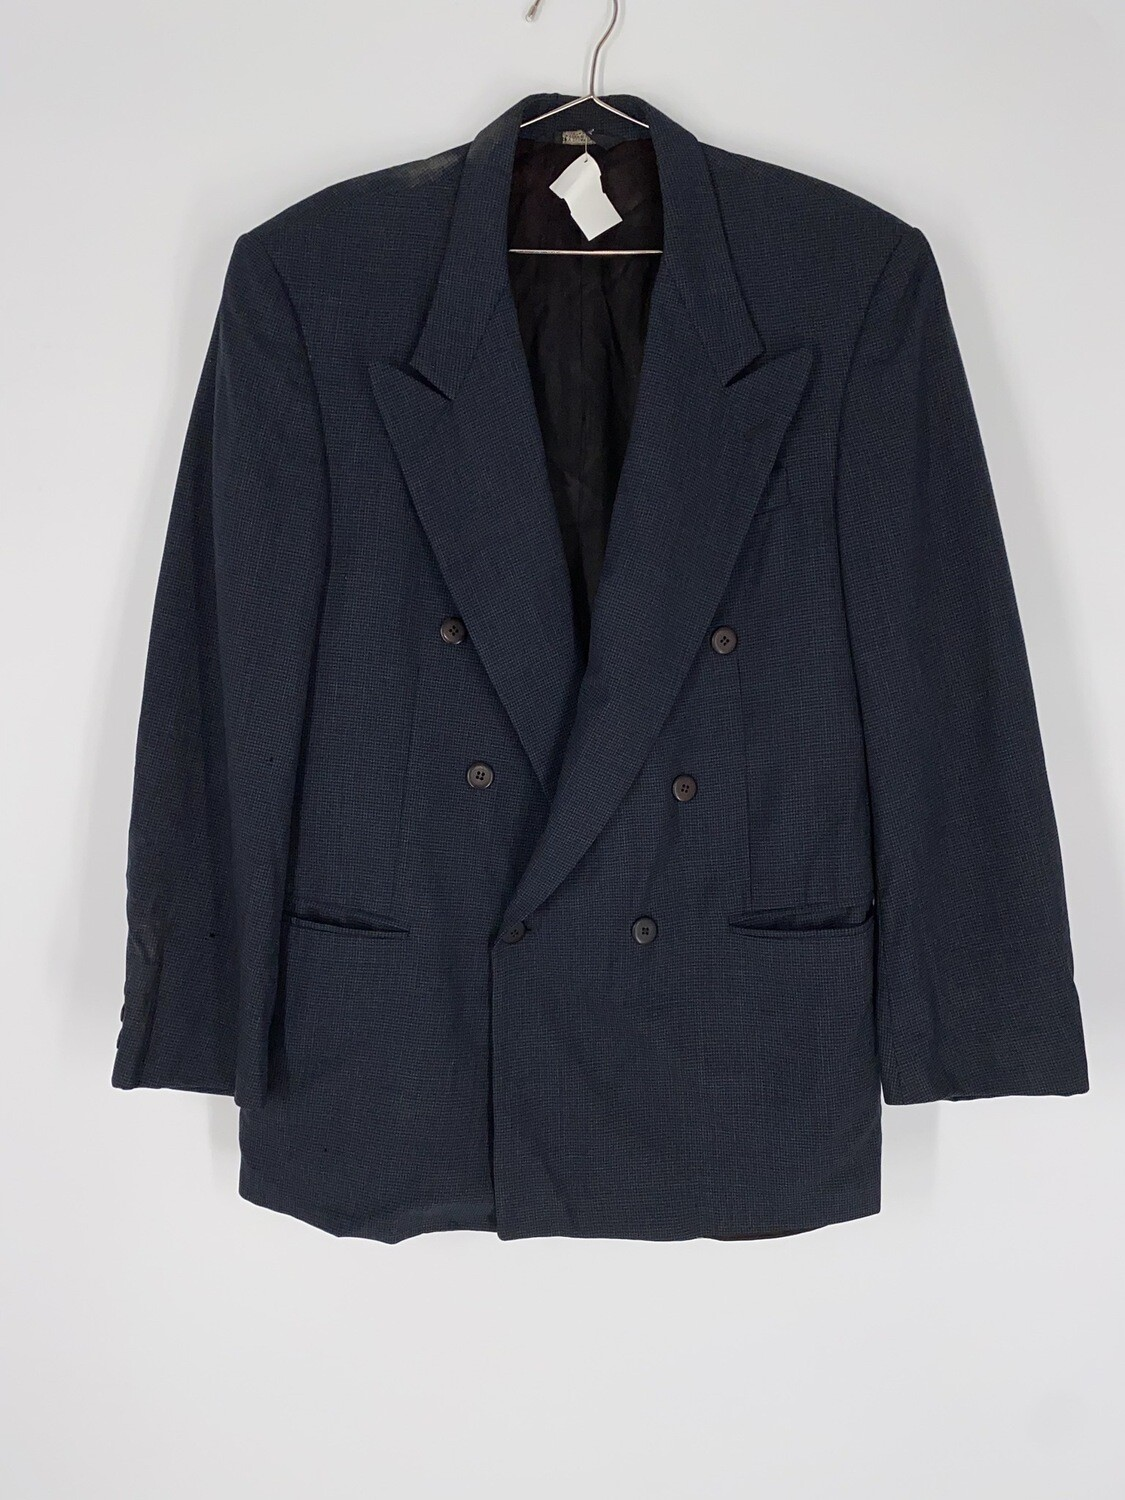 Barry Manufacturing  Blue And Black Checkered Blazer Size L